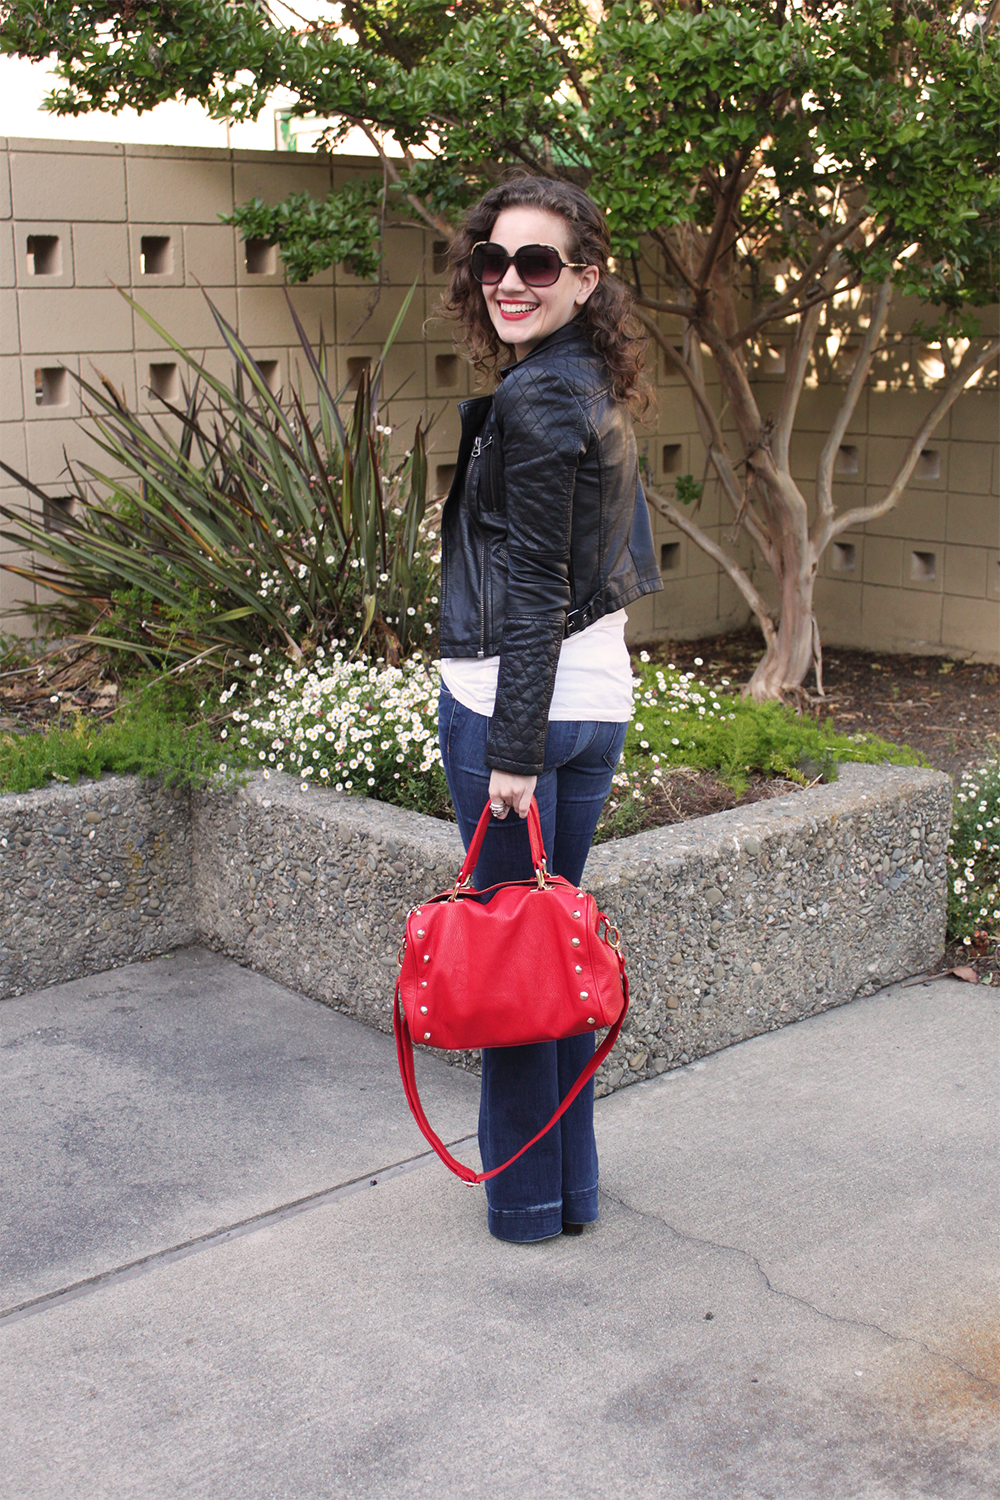 topshop leather jacket and lovestory jeans - undeniable style